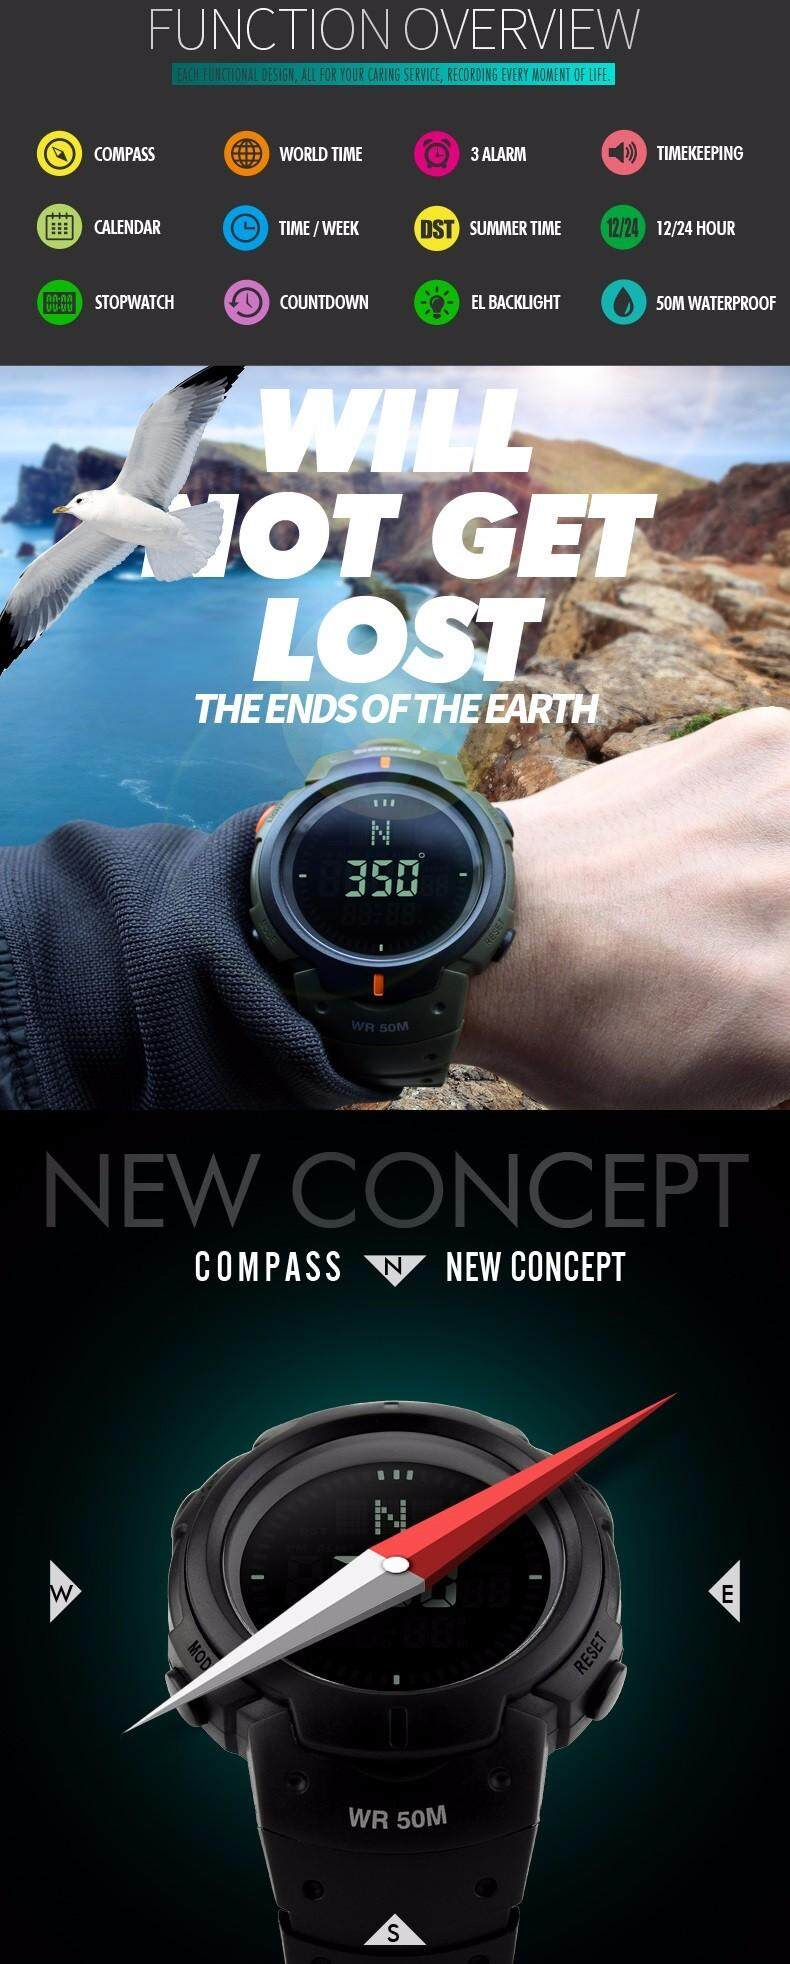 Men's Watches Digital Watches New Brand Outdoor Sports Compass Watches Hiking Men Watch Digital Led Electronic Watch Man Sports Watches Chronograph Men Clock And To Have A Long Life.